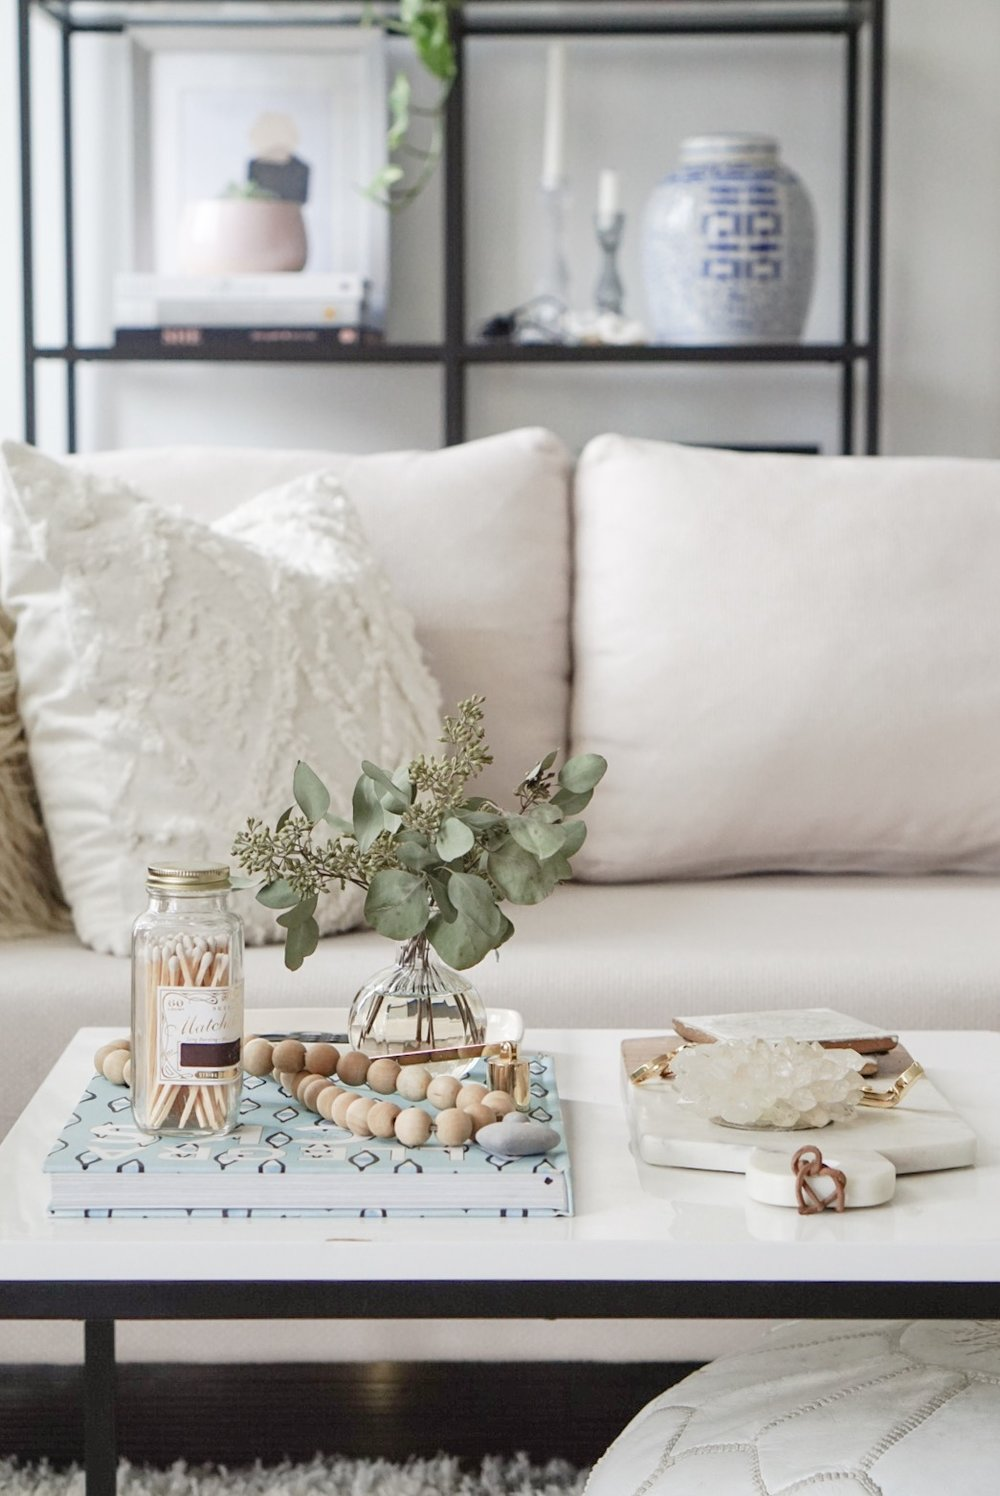 Despite Being Small, Coffee Tables Are Mighty, And Can Make A Significant  Impact On A Room. They Often Act As An Anchor For Your Living Space, ...